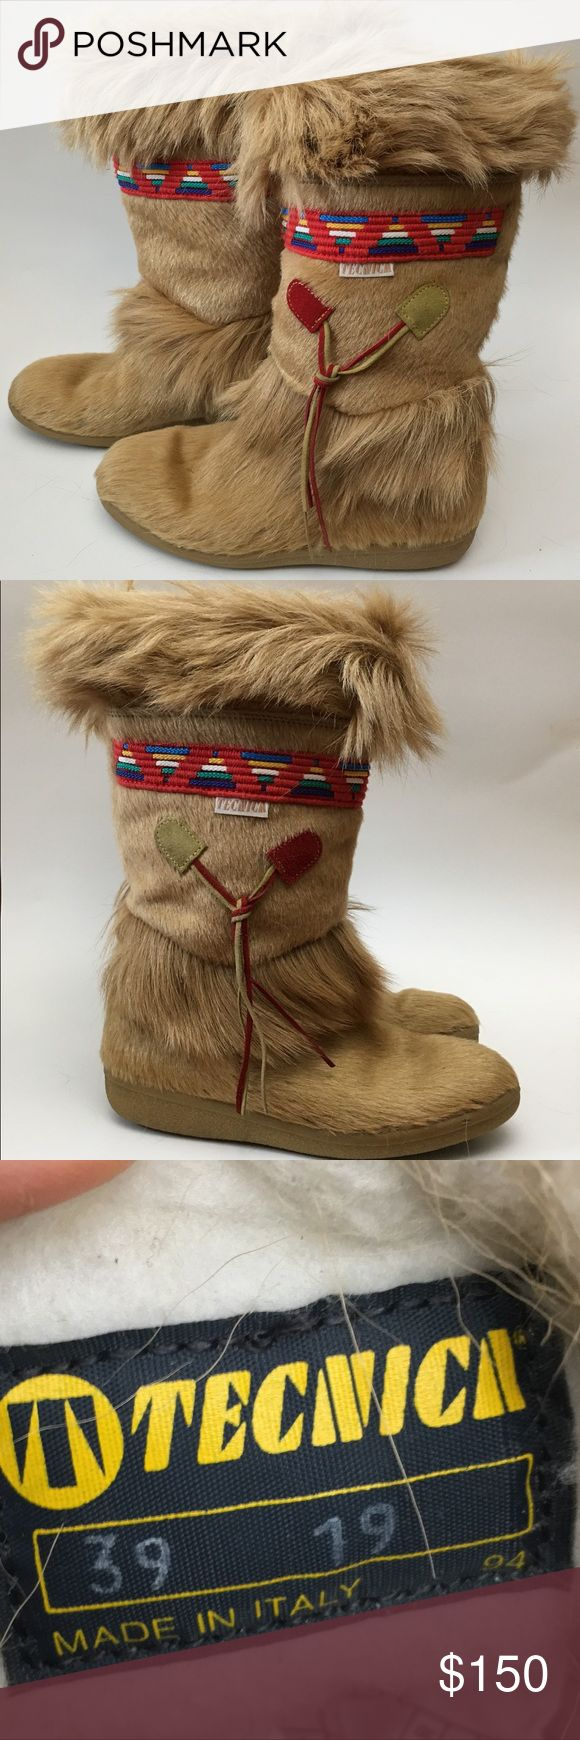 Vtg 70s Tecnica Fur Apres Ski Boots Rainbow Trim Vintage Tecnica Tan Fur Apres Ski Boots Rainbow Trim Italy Womens 39 US 8.  Calf hair with a fun red woven trim. Rainbow triangles on trim. Shaft measurement can been seen in photos. Never worn. Vintage 70s item. Dime size section with fur missing as seen in photos.  Please review condition section and all photos prior to purchase. Tecnica Shoes Winter & Rain Boots